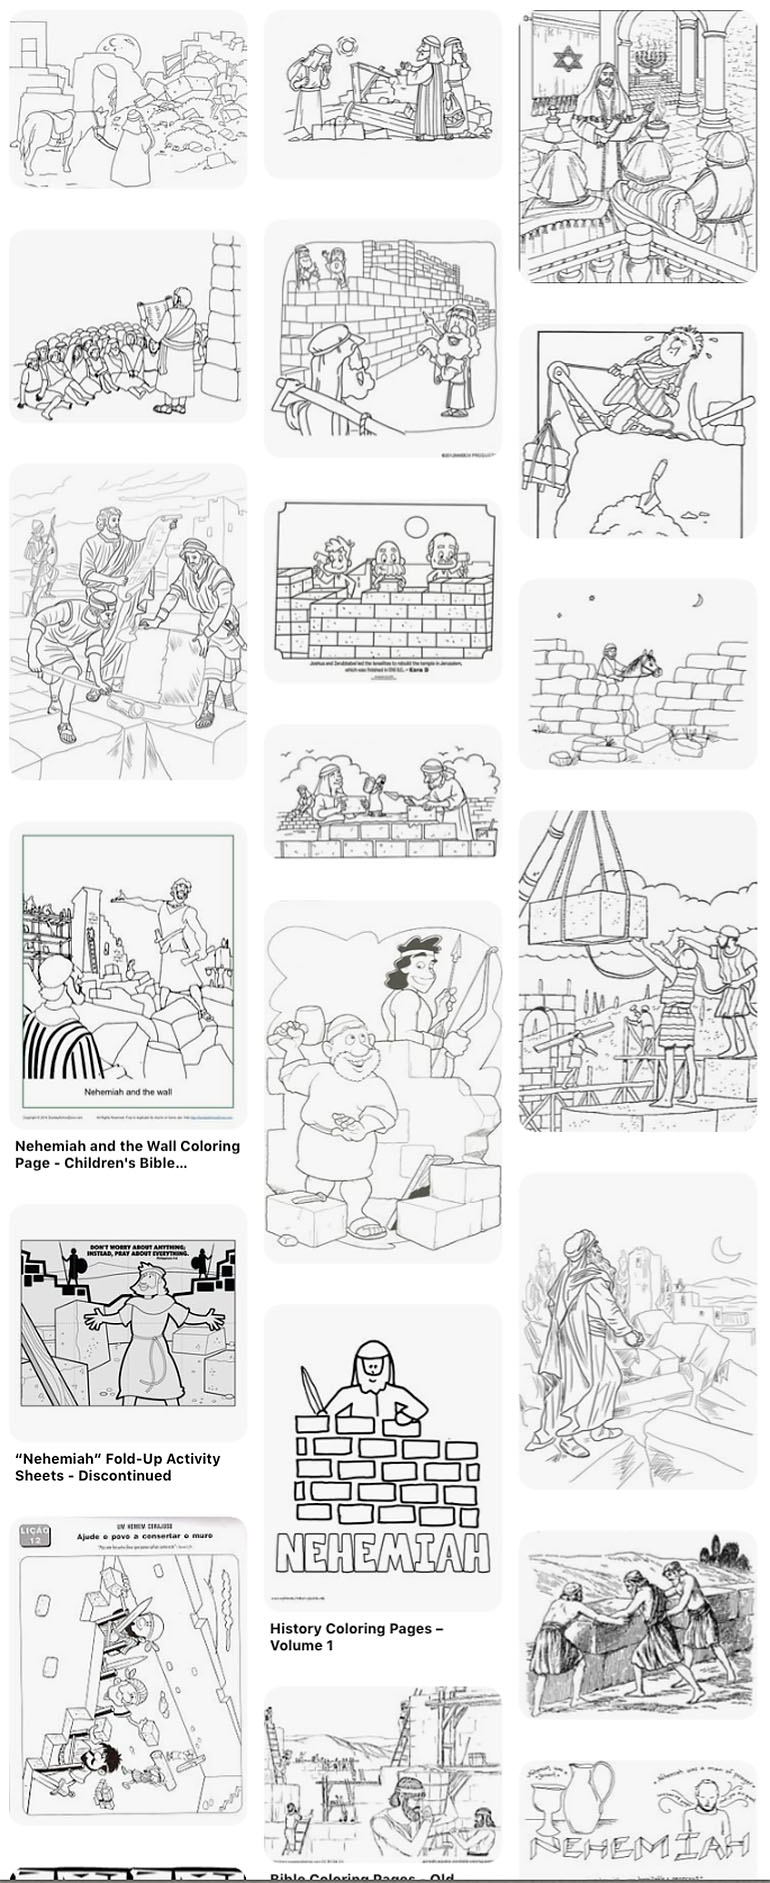 Nehemiah and the Wall Coloring Page - Children's Bible Activities ... | 1883x770